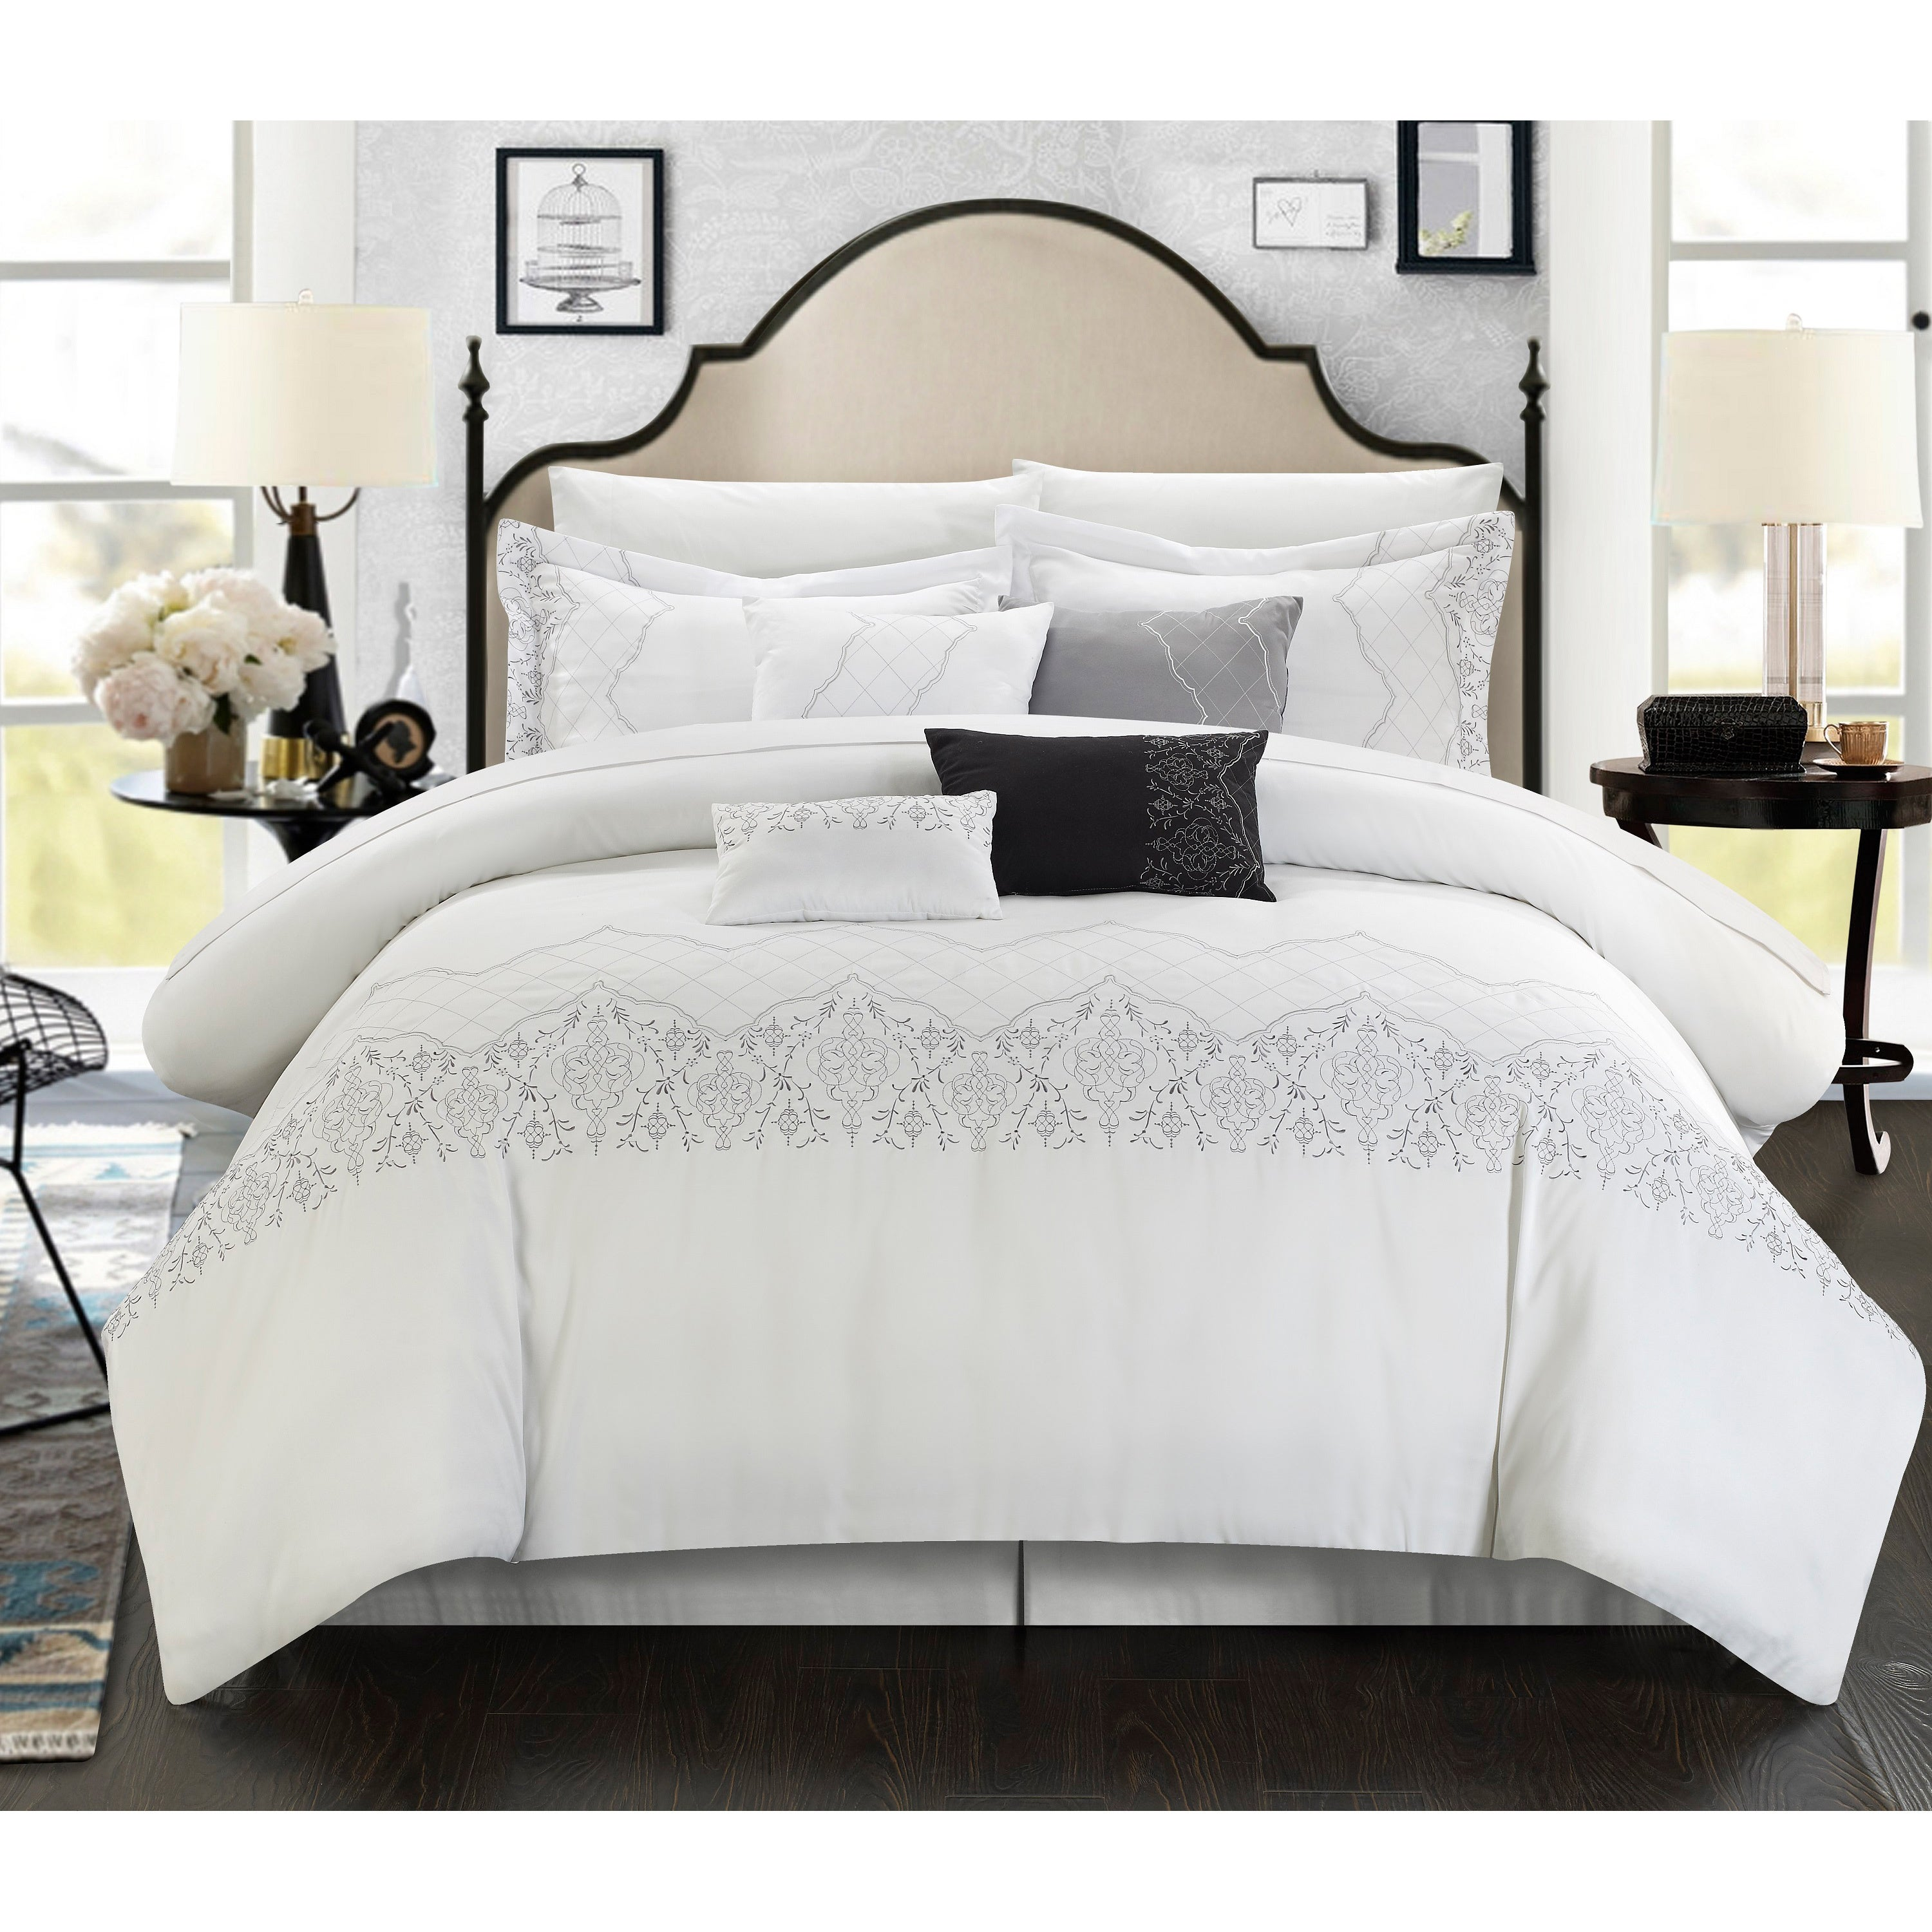 grace piece embroidered white comforter set  free shipping  - grace piece embroidered white comforter set  free shipping today overstockcom